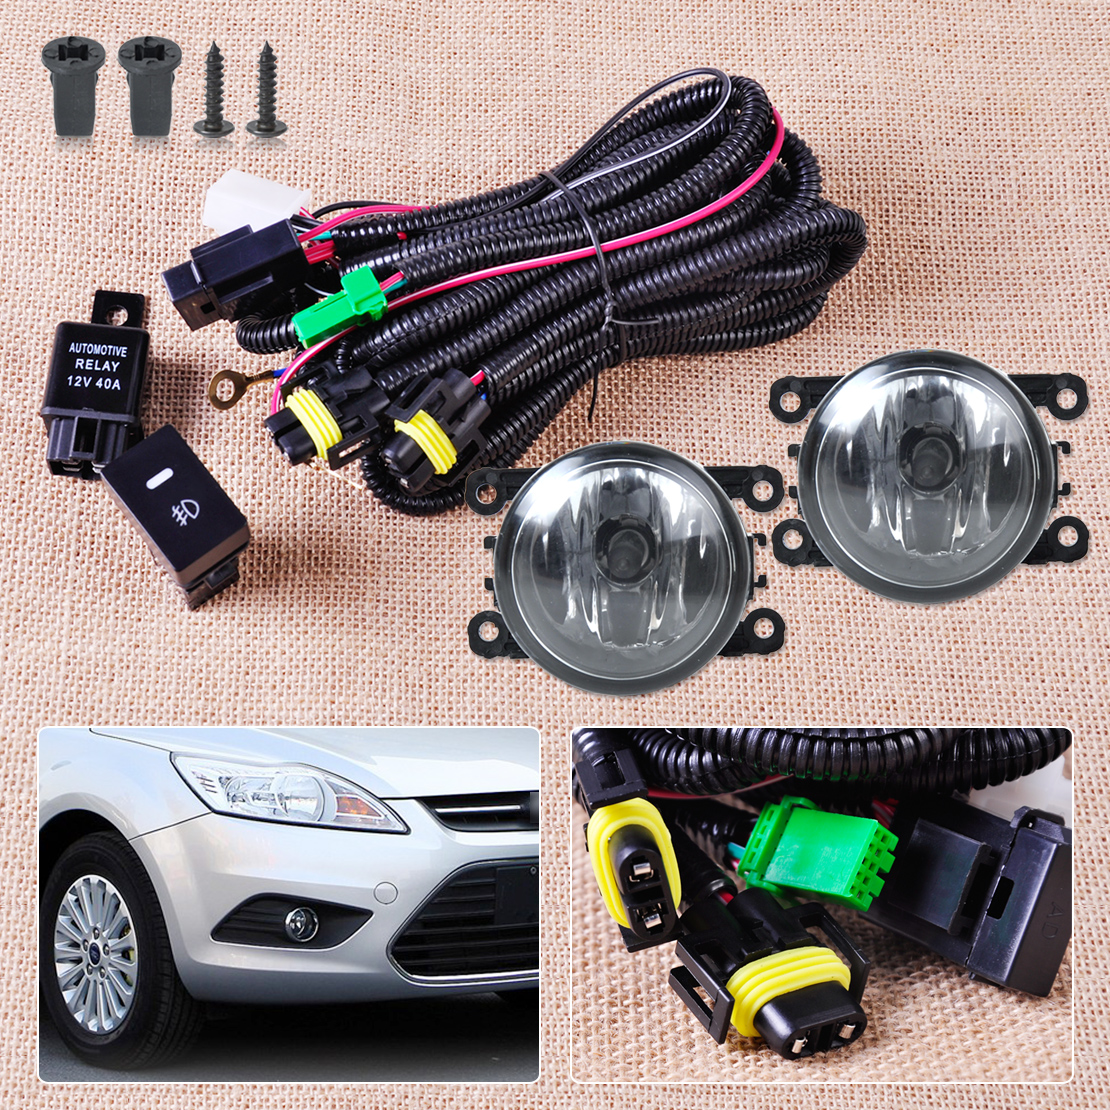 Citall Wiring Harness Sockets Switch 2 H11 Fog Lights Lamp 4f9z Show Photo